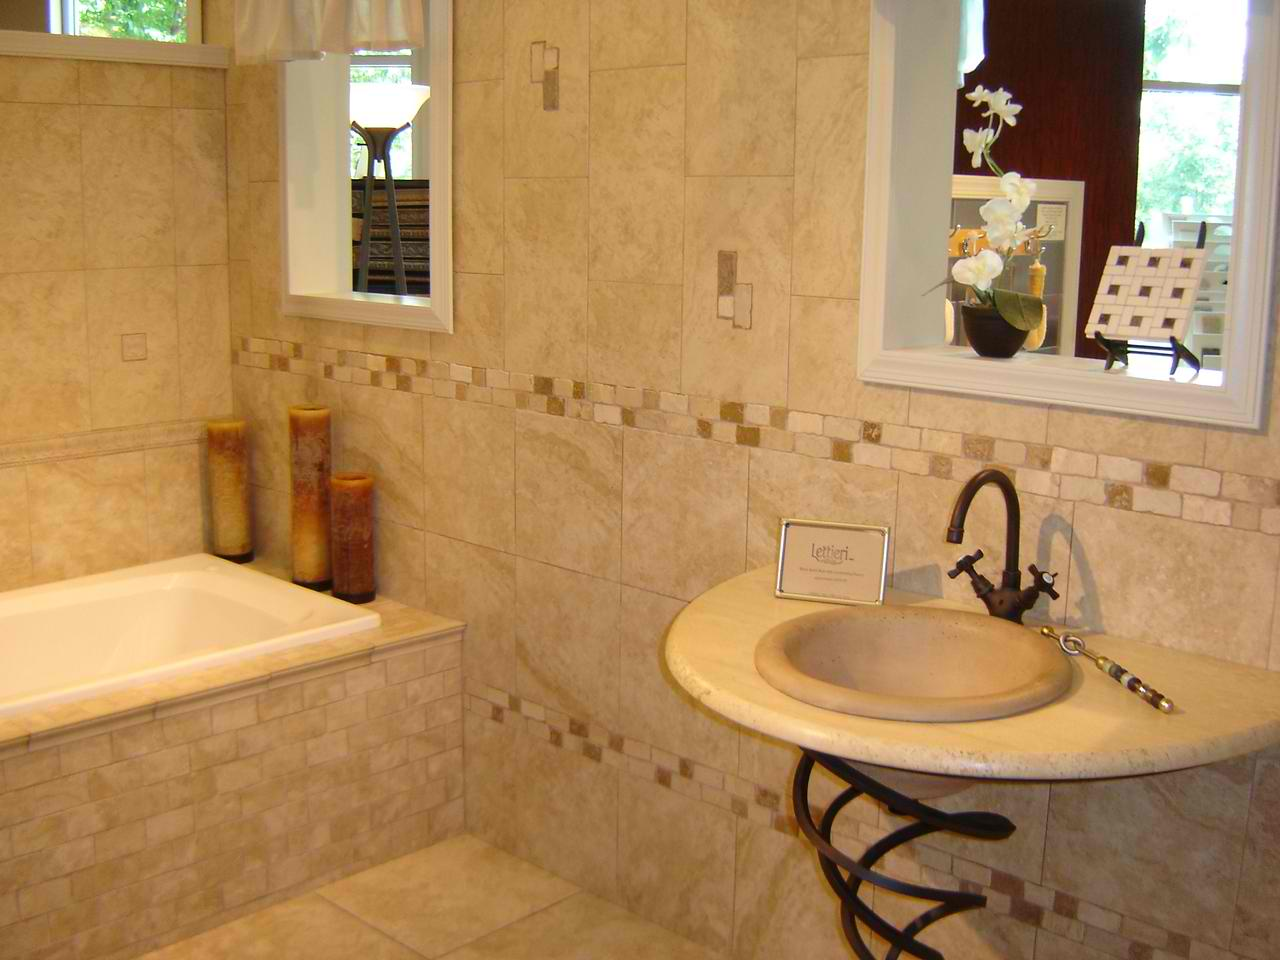 Http Bathroomtileideas Blog Blogspot Com 2010 09 Bathroom Tile Design Html